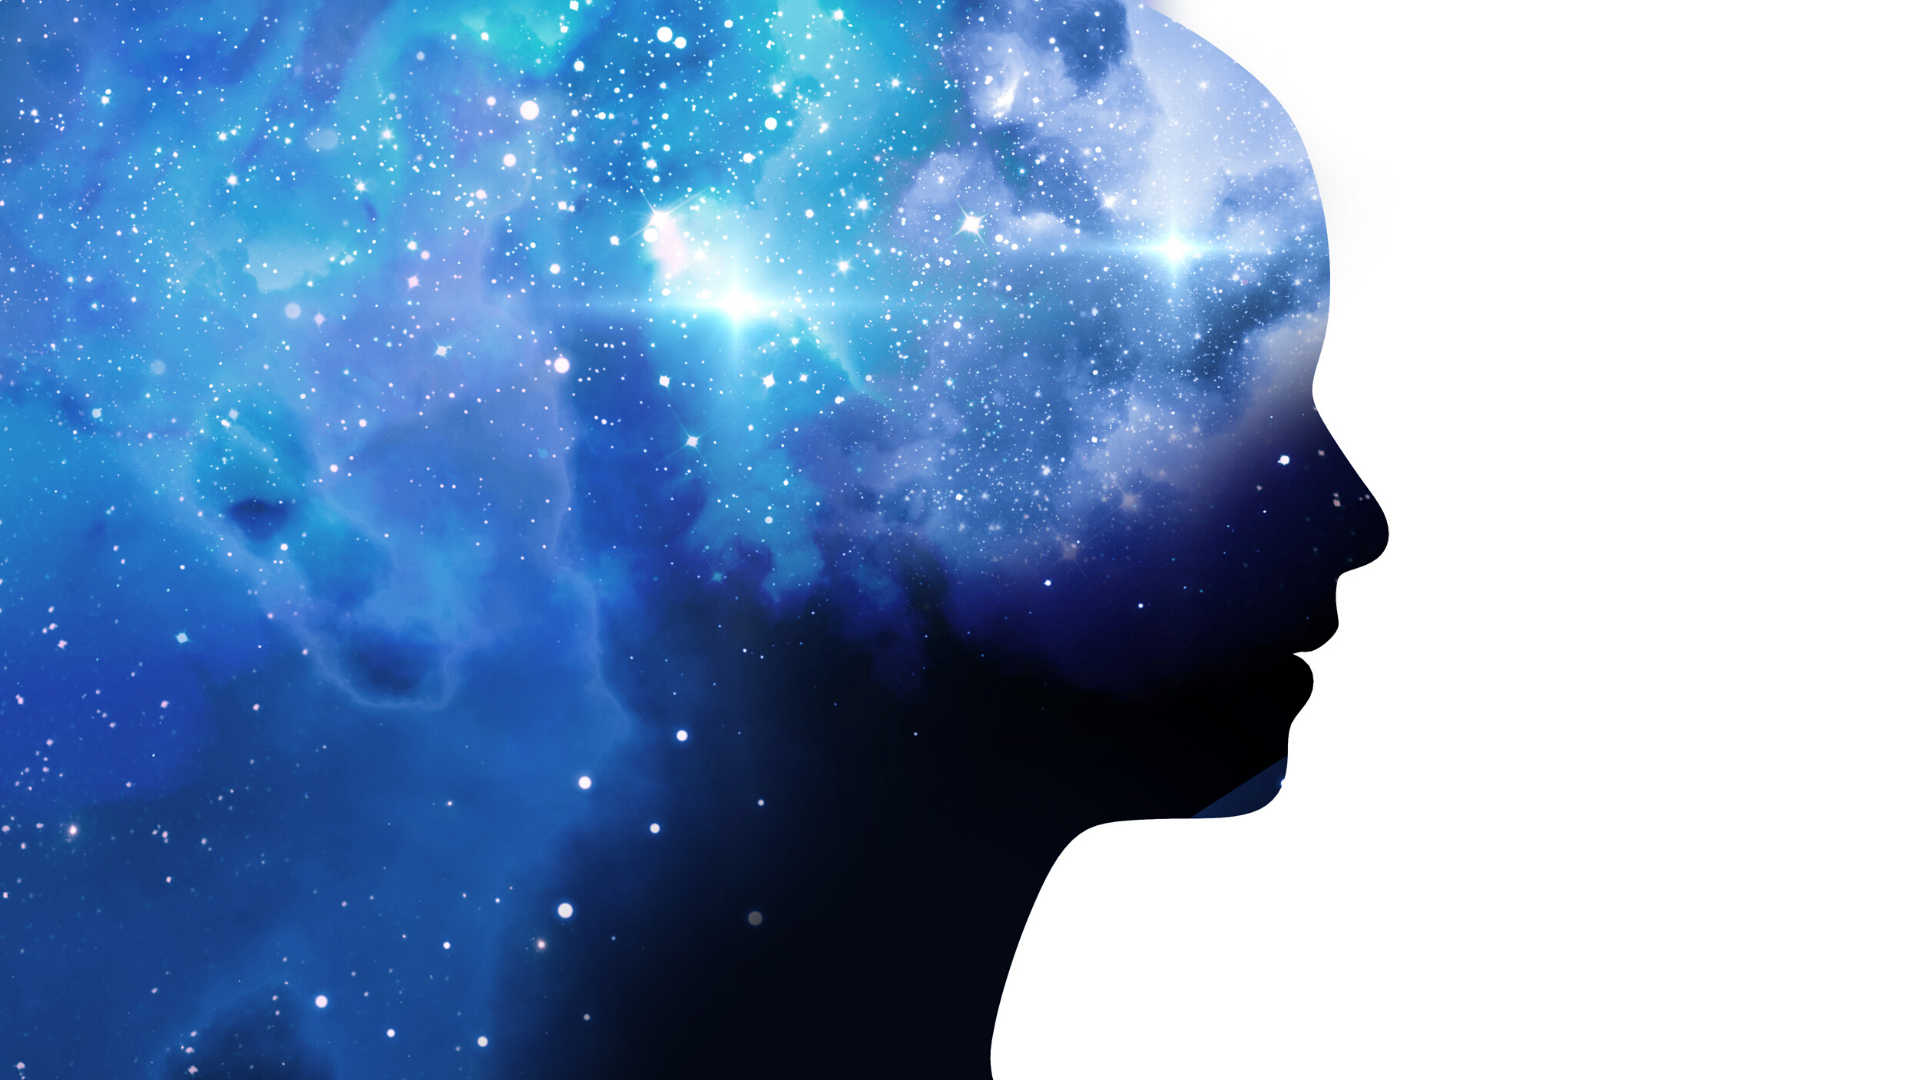 Water color illustration of human profile connected to the universe.